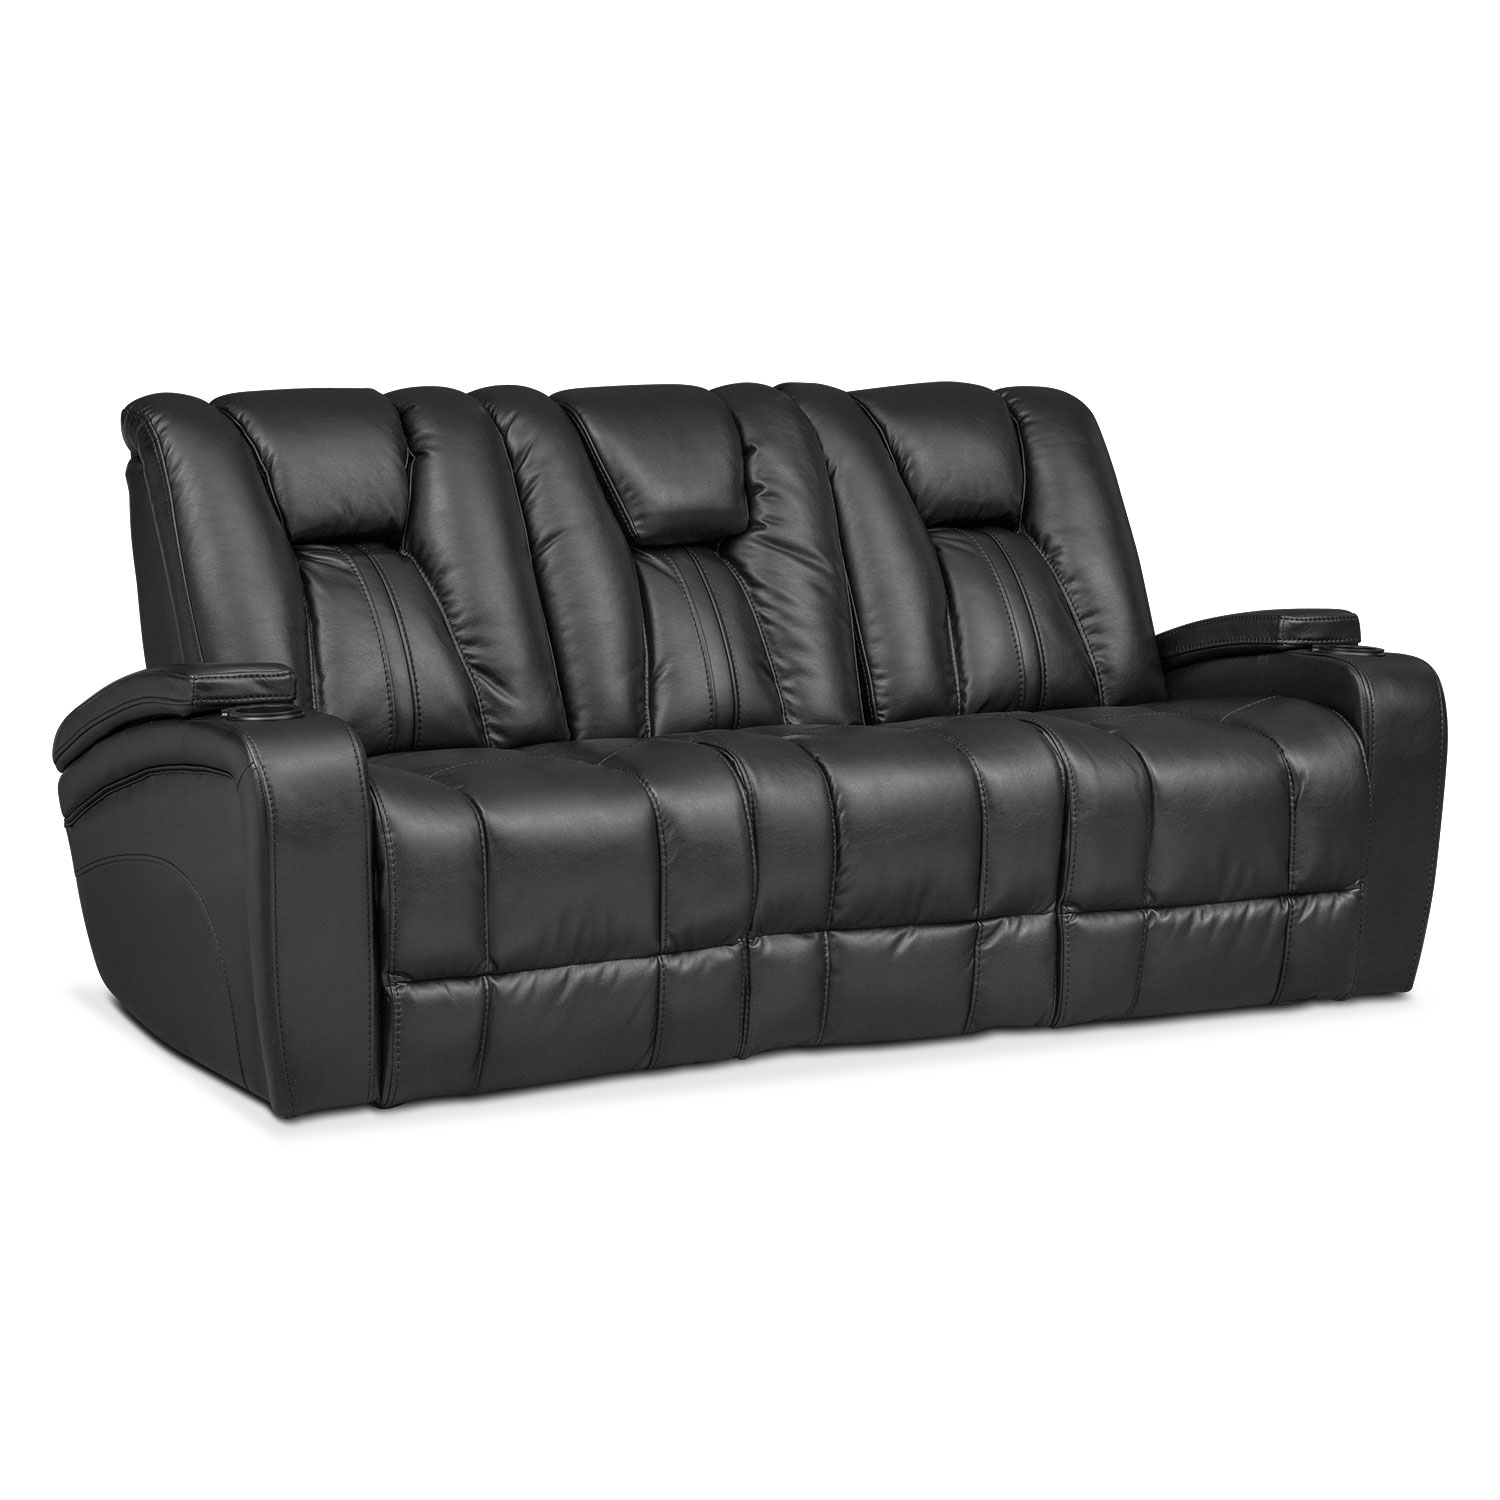 Sofas & Couches | Living Room Seating | Value City Furniture And For Scarborough Sectional Sofas (View 7 of 10)